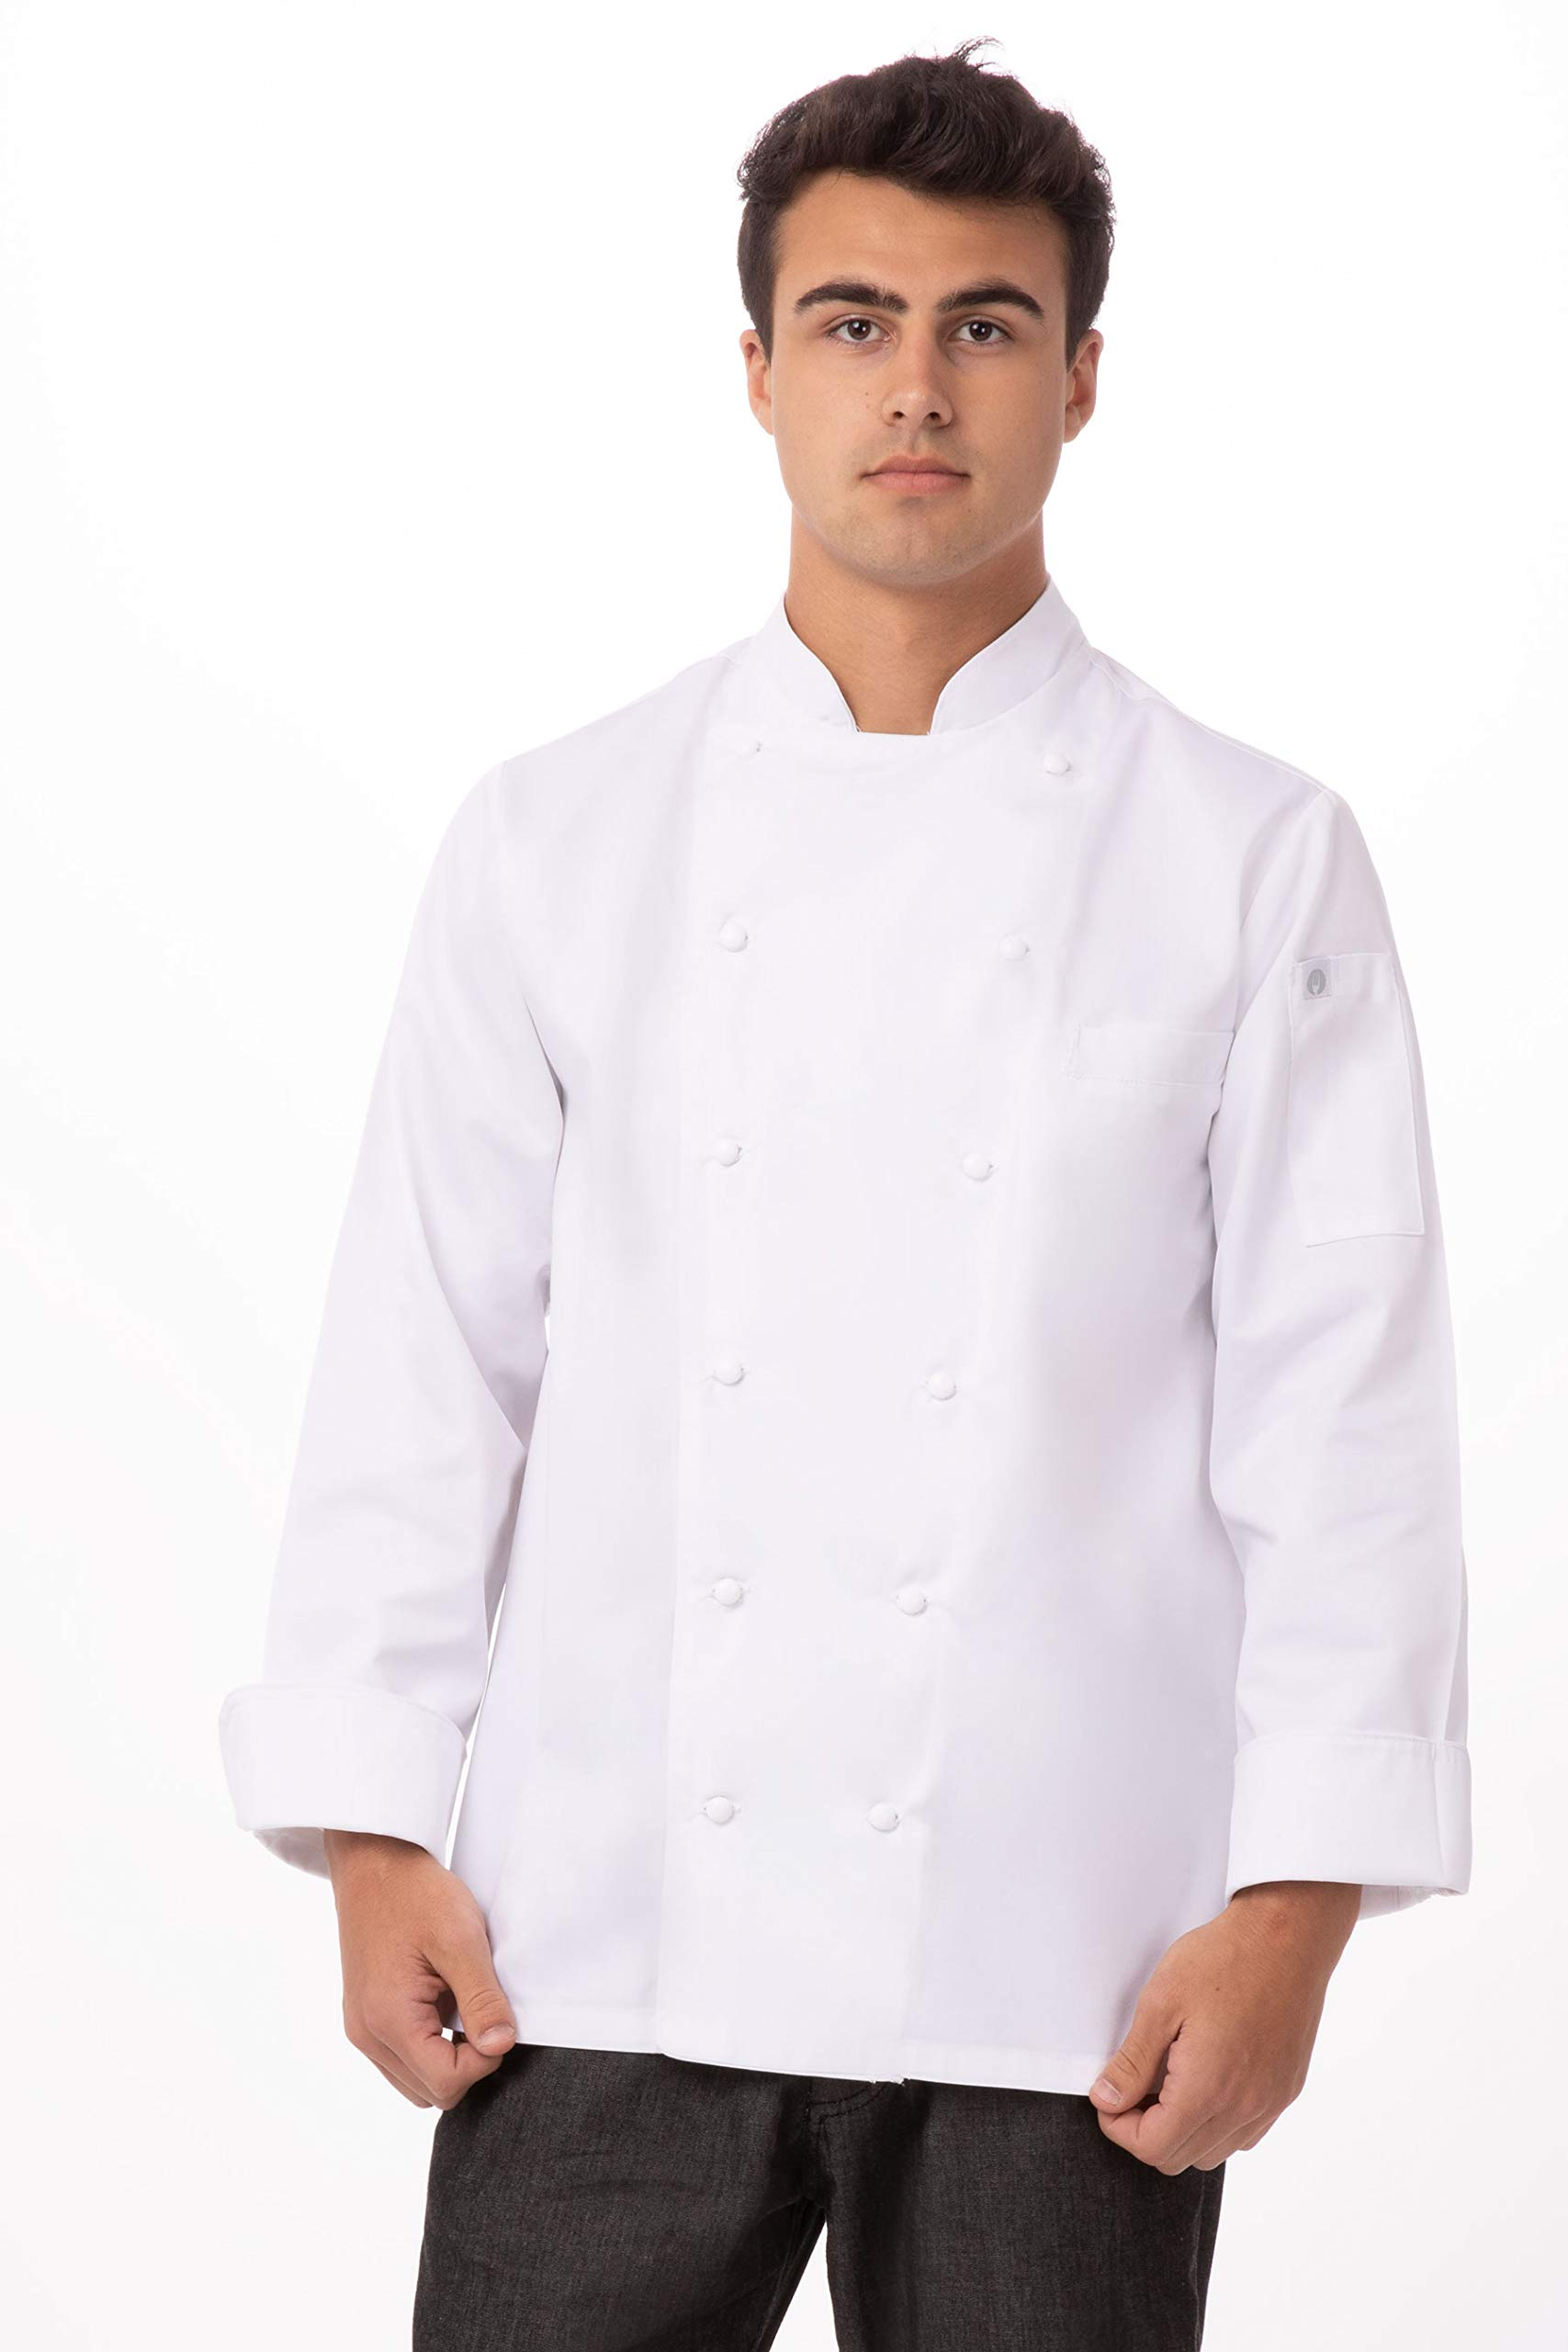 Chef Works Men's Monza Executive Chef Coat, White, X-Large by Chef Works